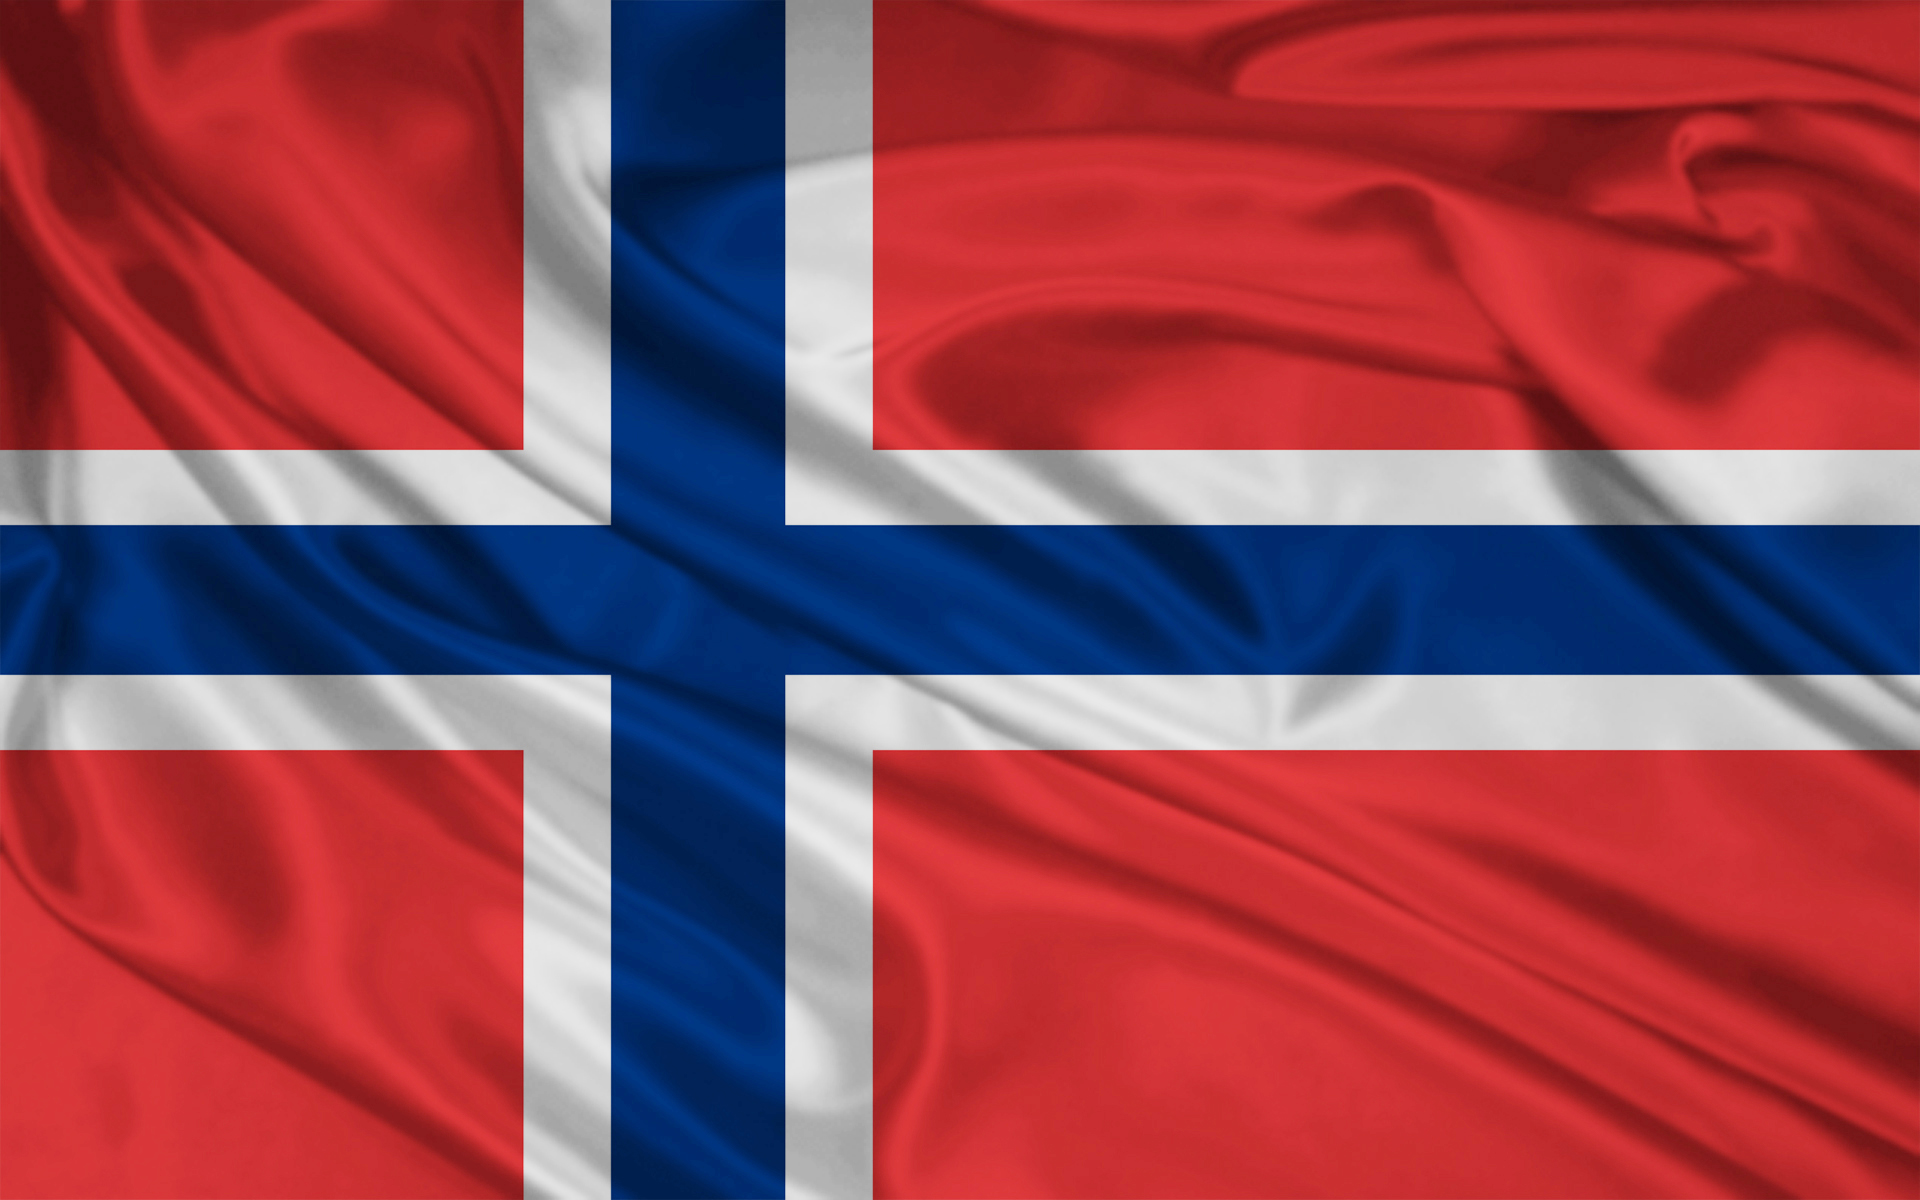 hand flag fahne flagge norwegen norway norge - Super-Fanshop